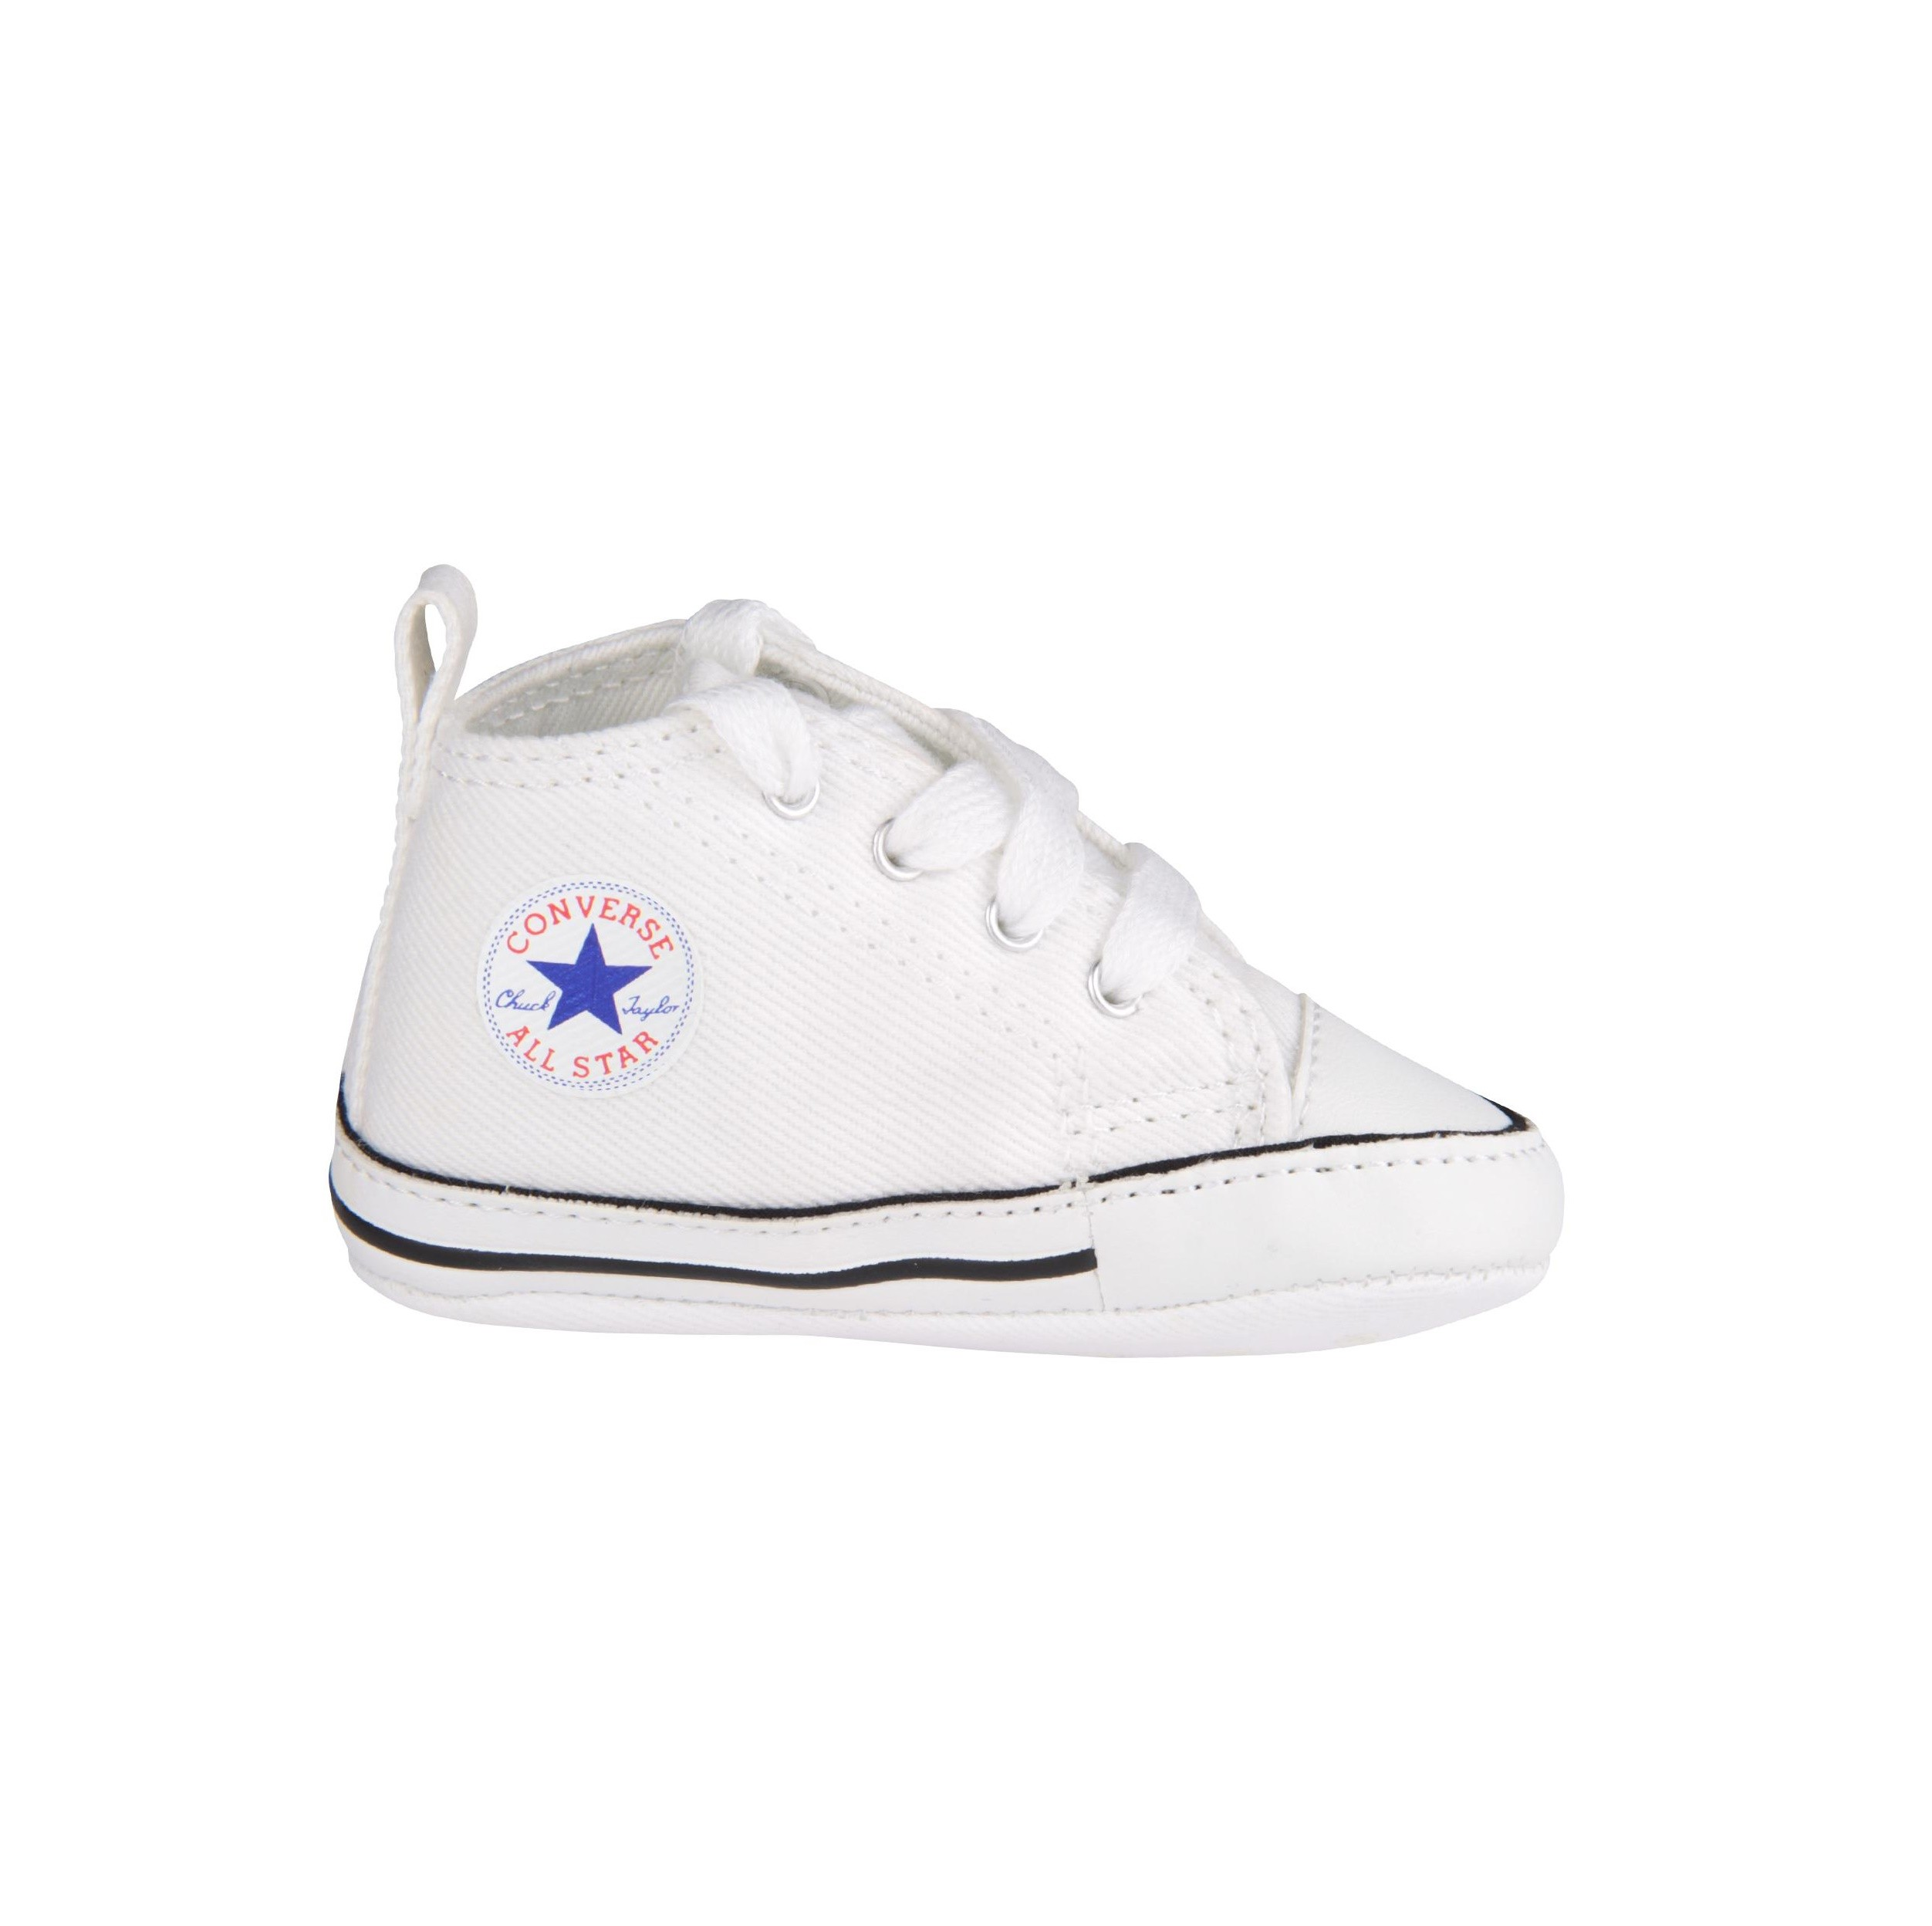 converse all star bimbi